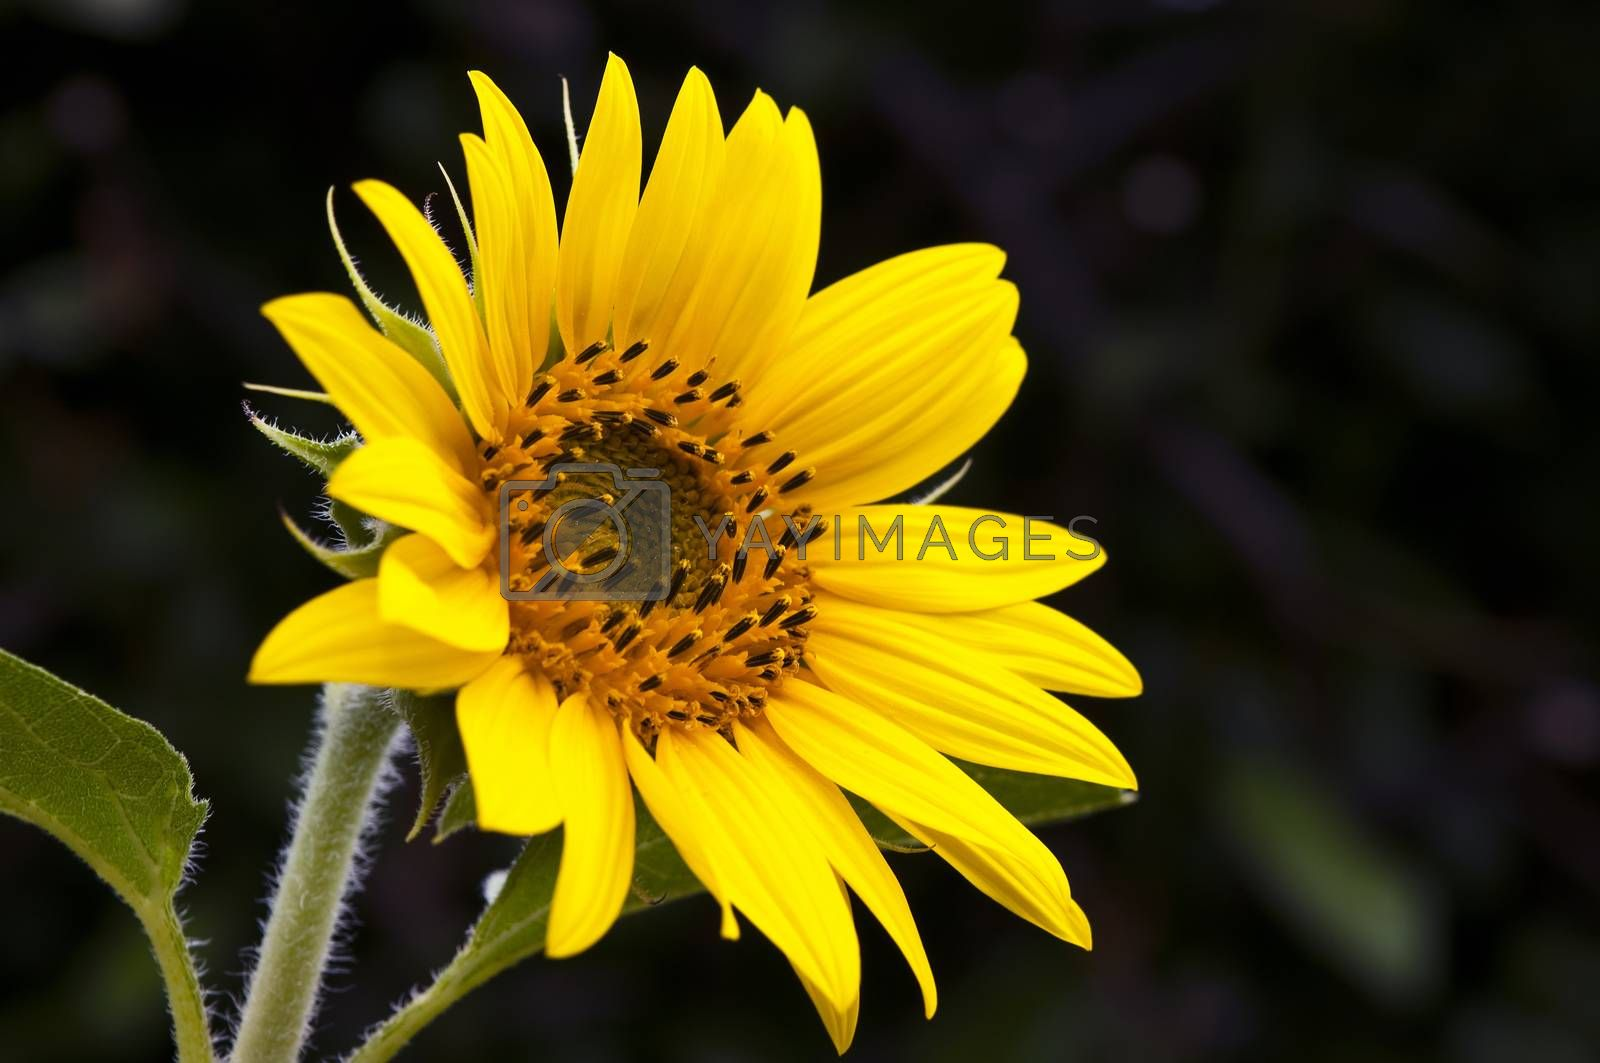 single sunflower against a dark background